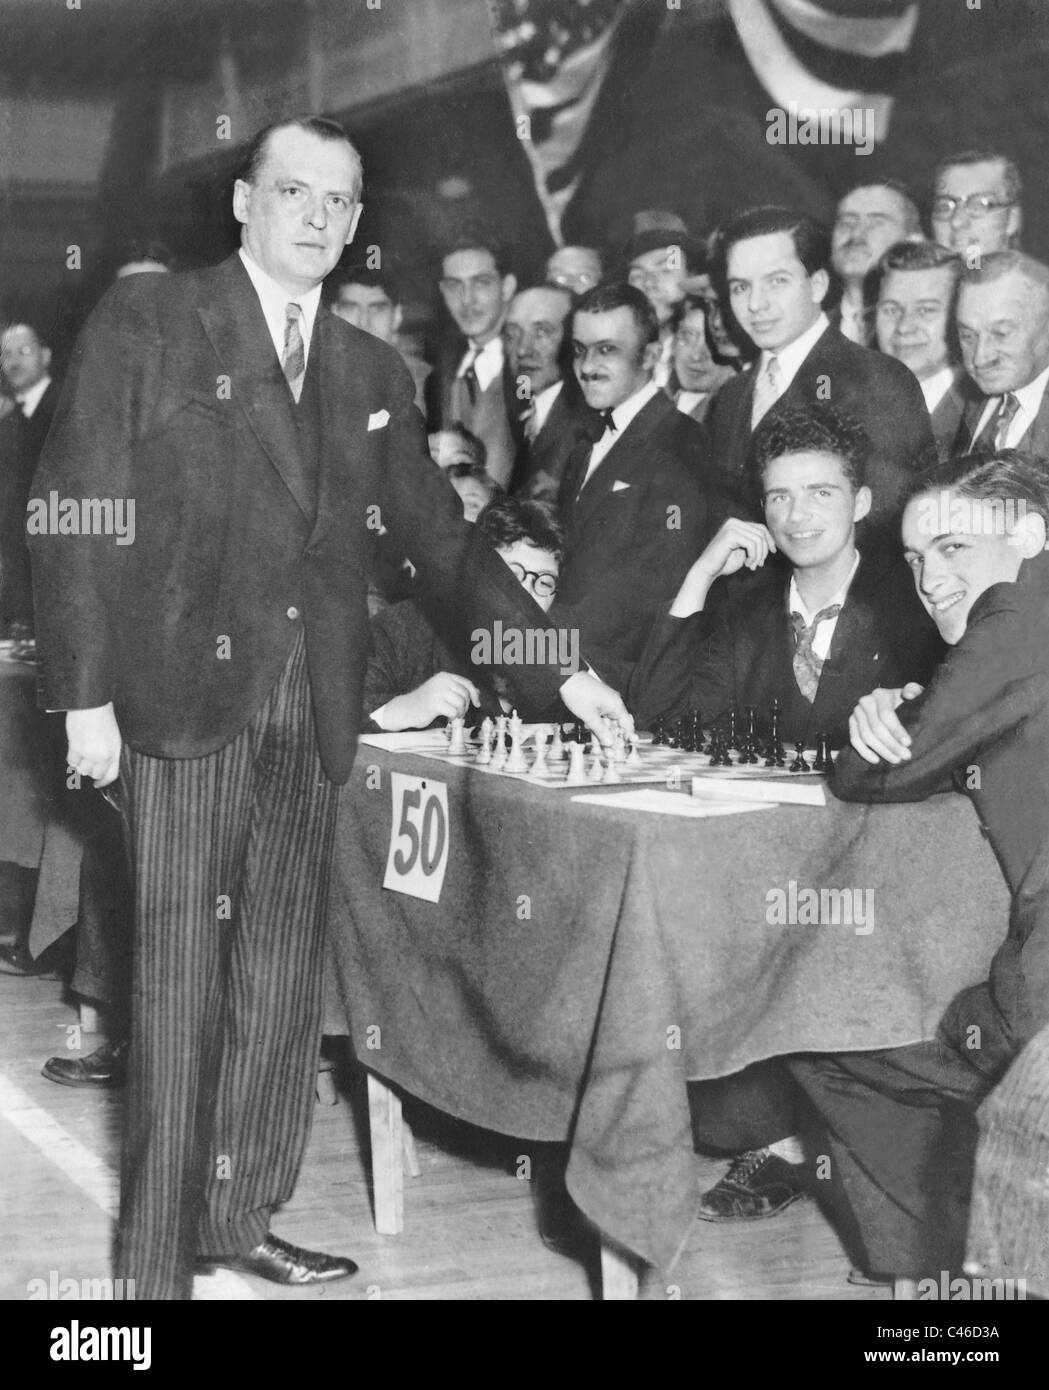 Alexander Alekhine playing simultaneous chess matches - Stock Image